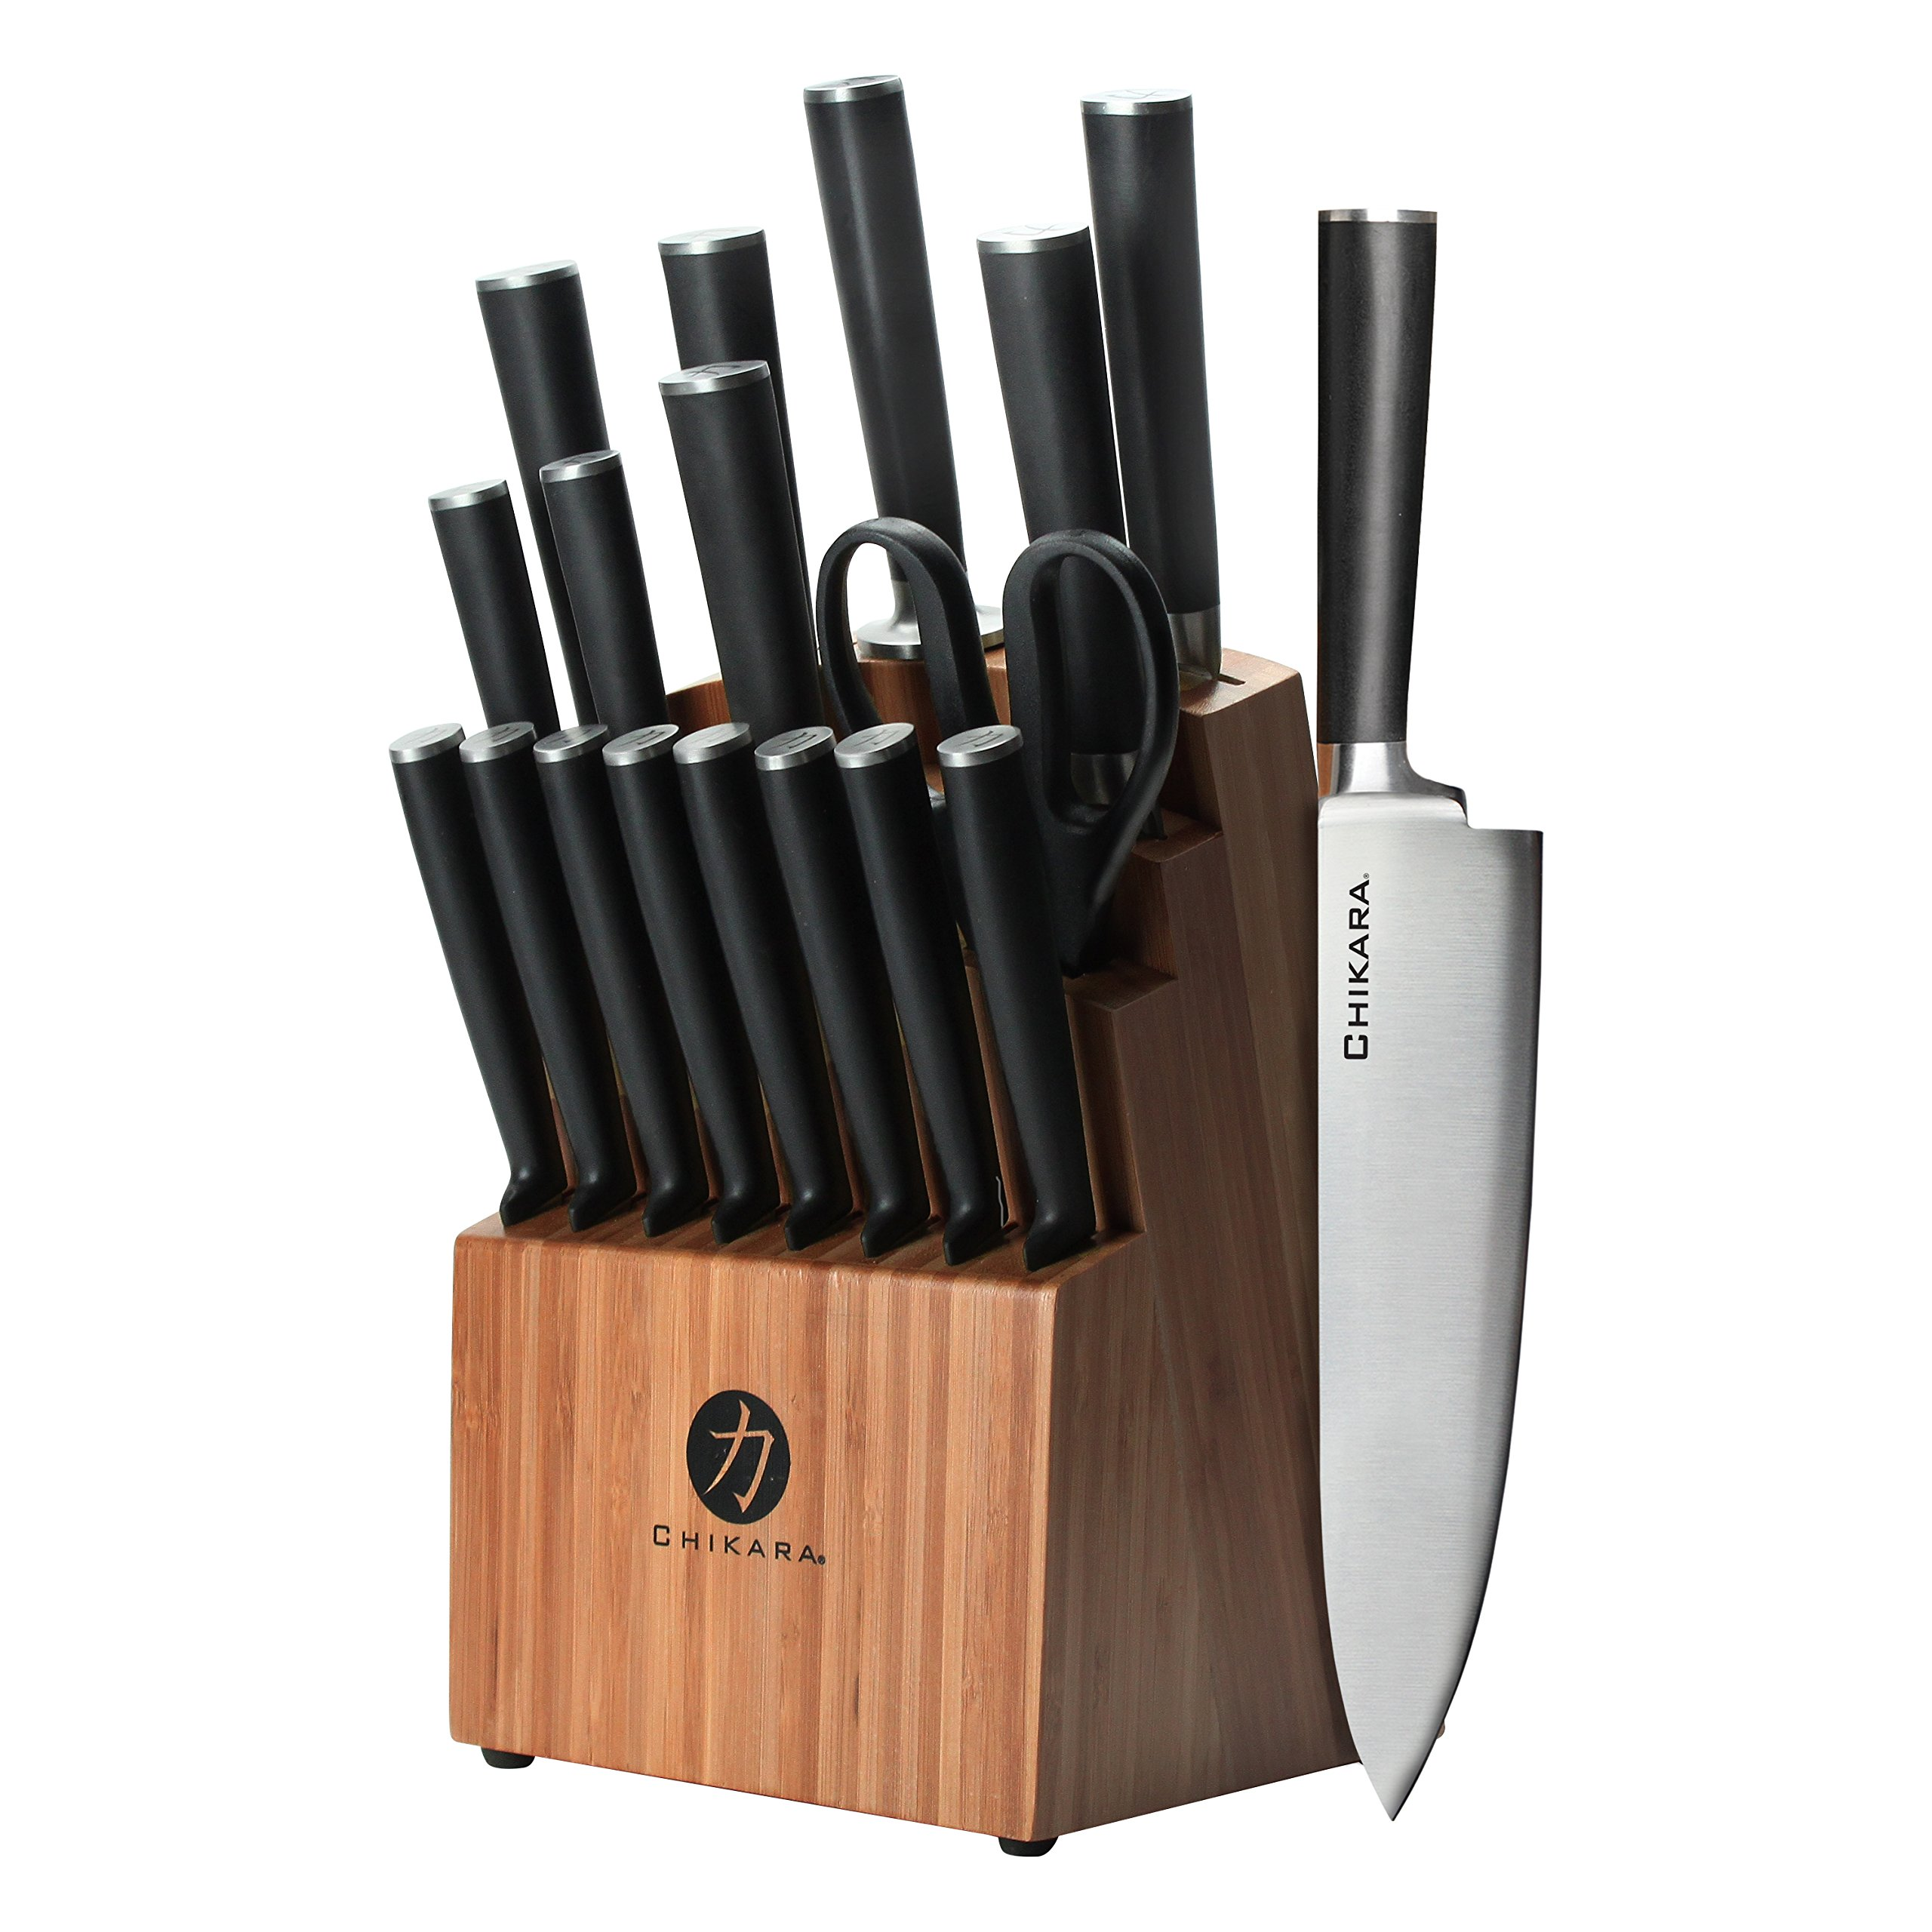 Ginsu Gourmet Chikara Series Forged 19-Piece Japanese Steel Knife Set – Cutlery Set with 420J Stainless Steel Kitchen Knives – Bamboo Finish Block, 07133DS